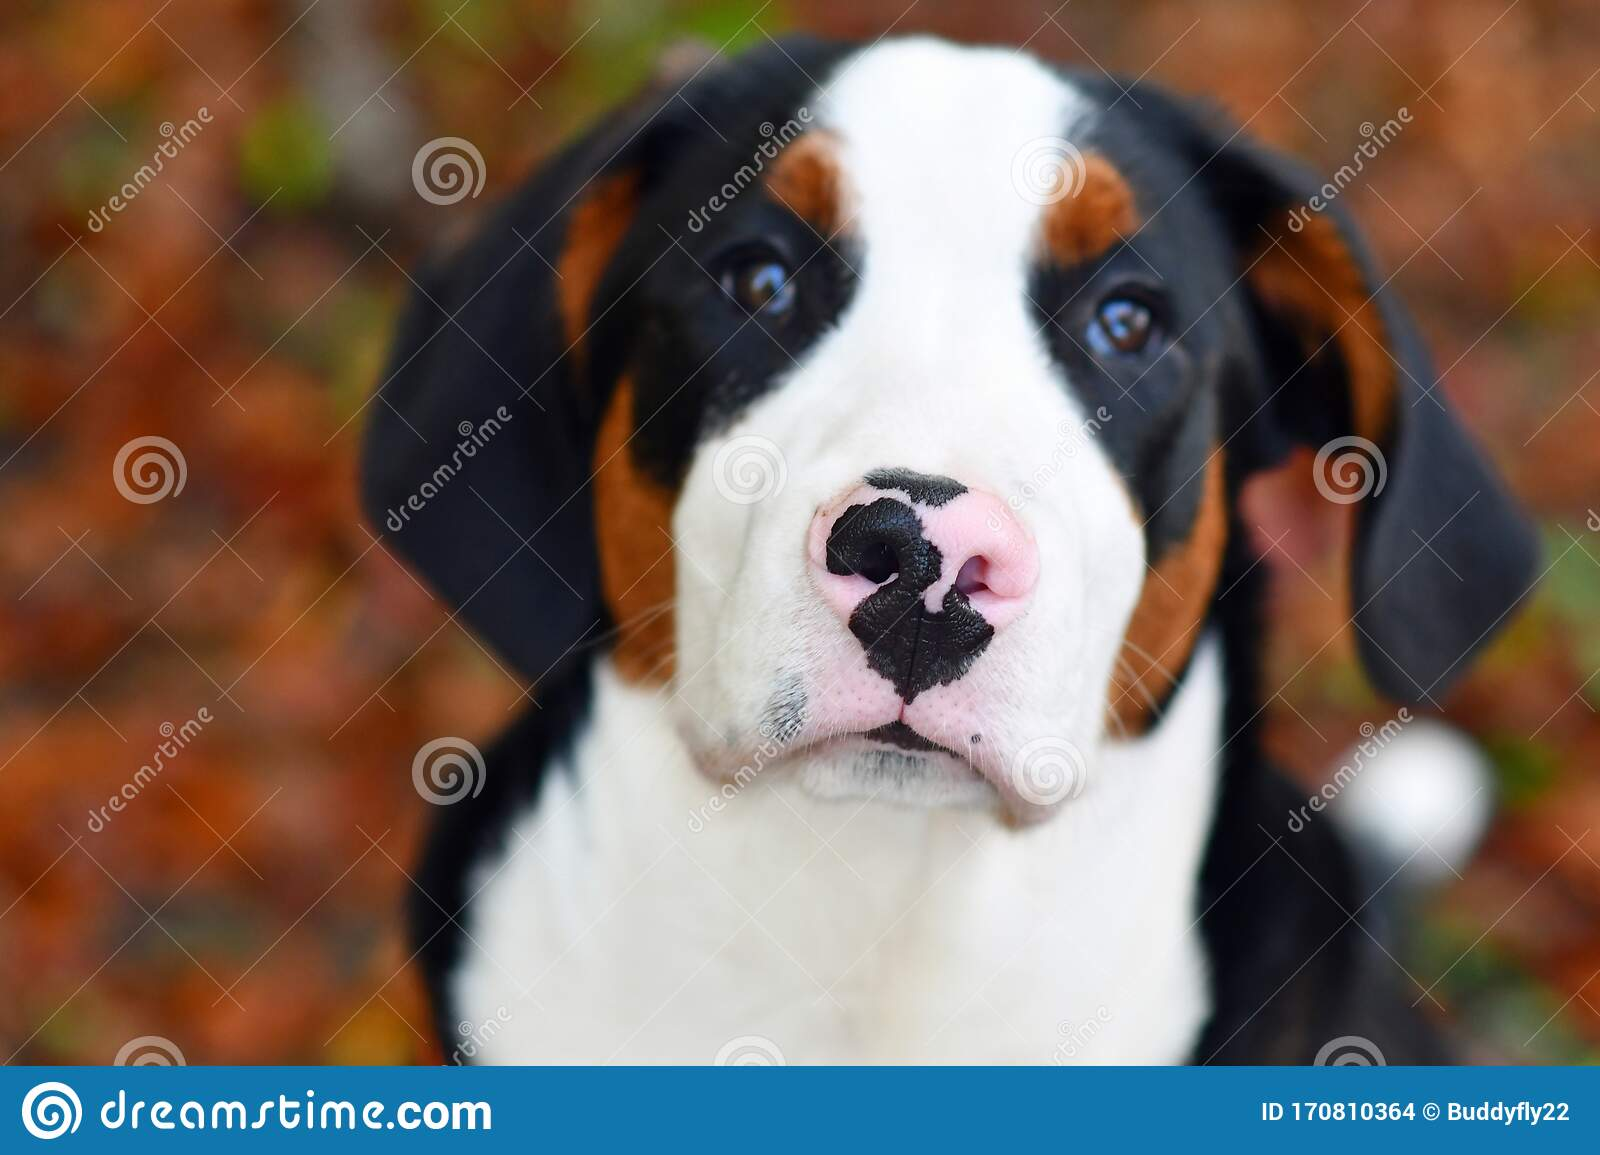 Cute And Funny Big Swiss Mountain Dog Puppy Stock Photo Image Of Swiss Fast 170810364